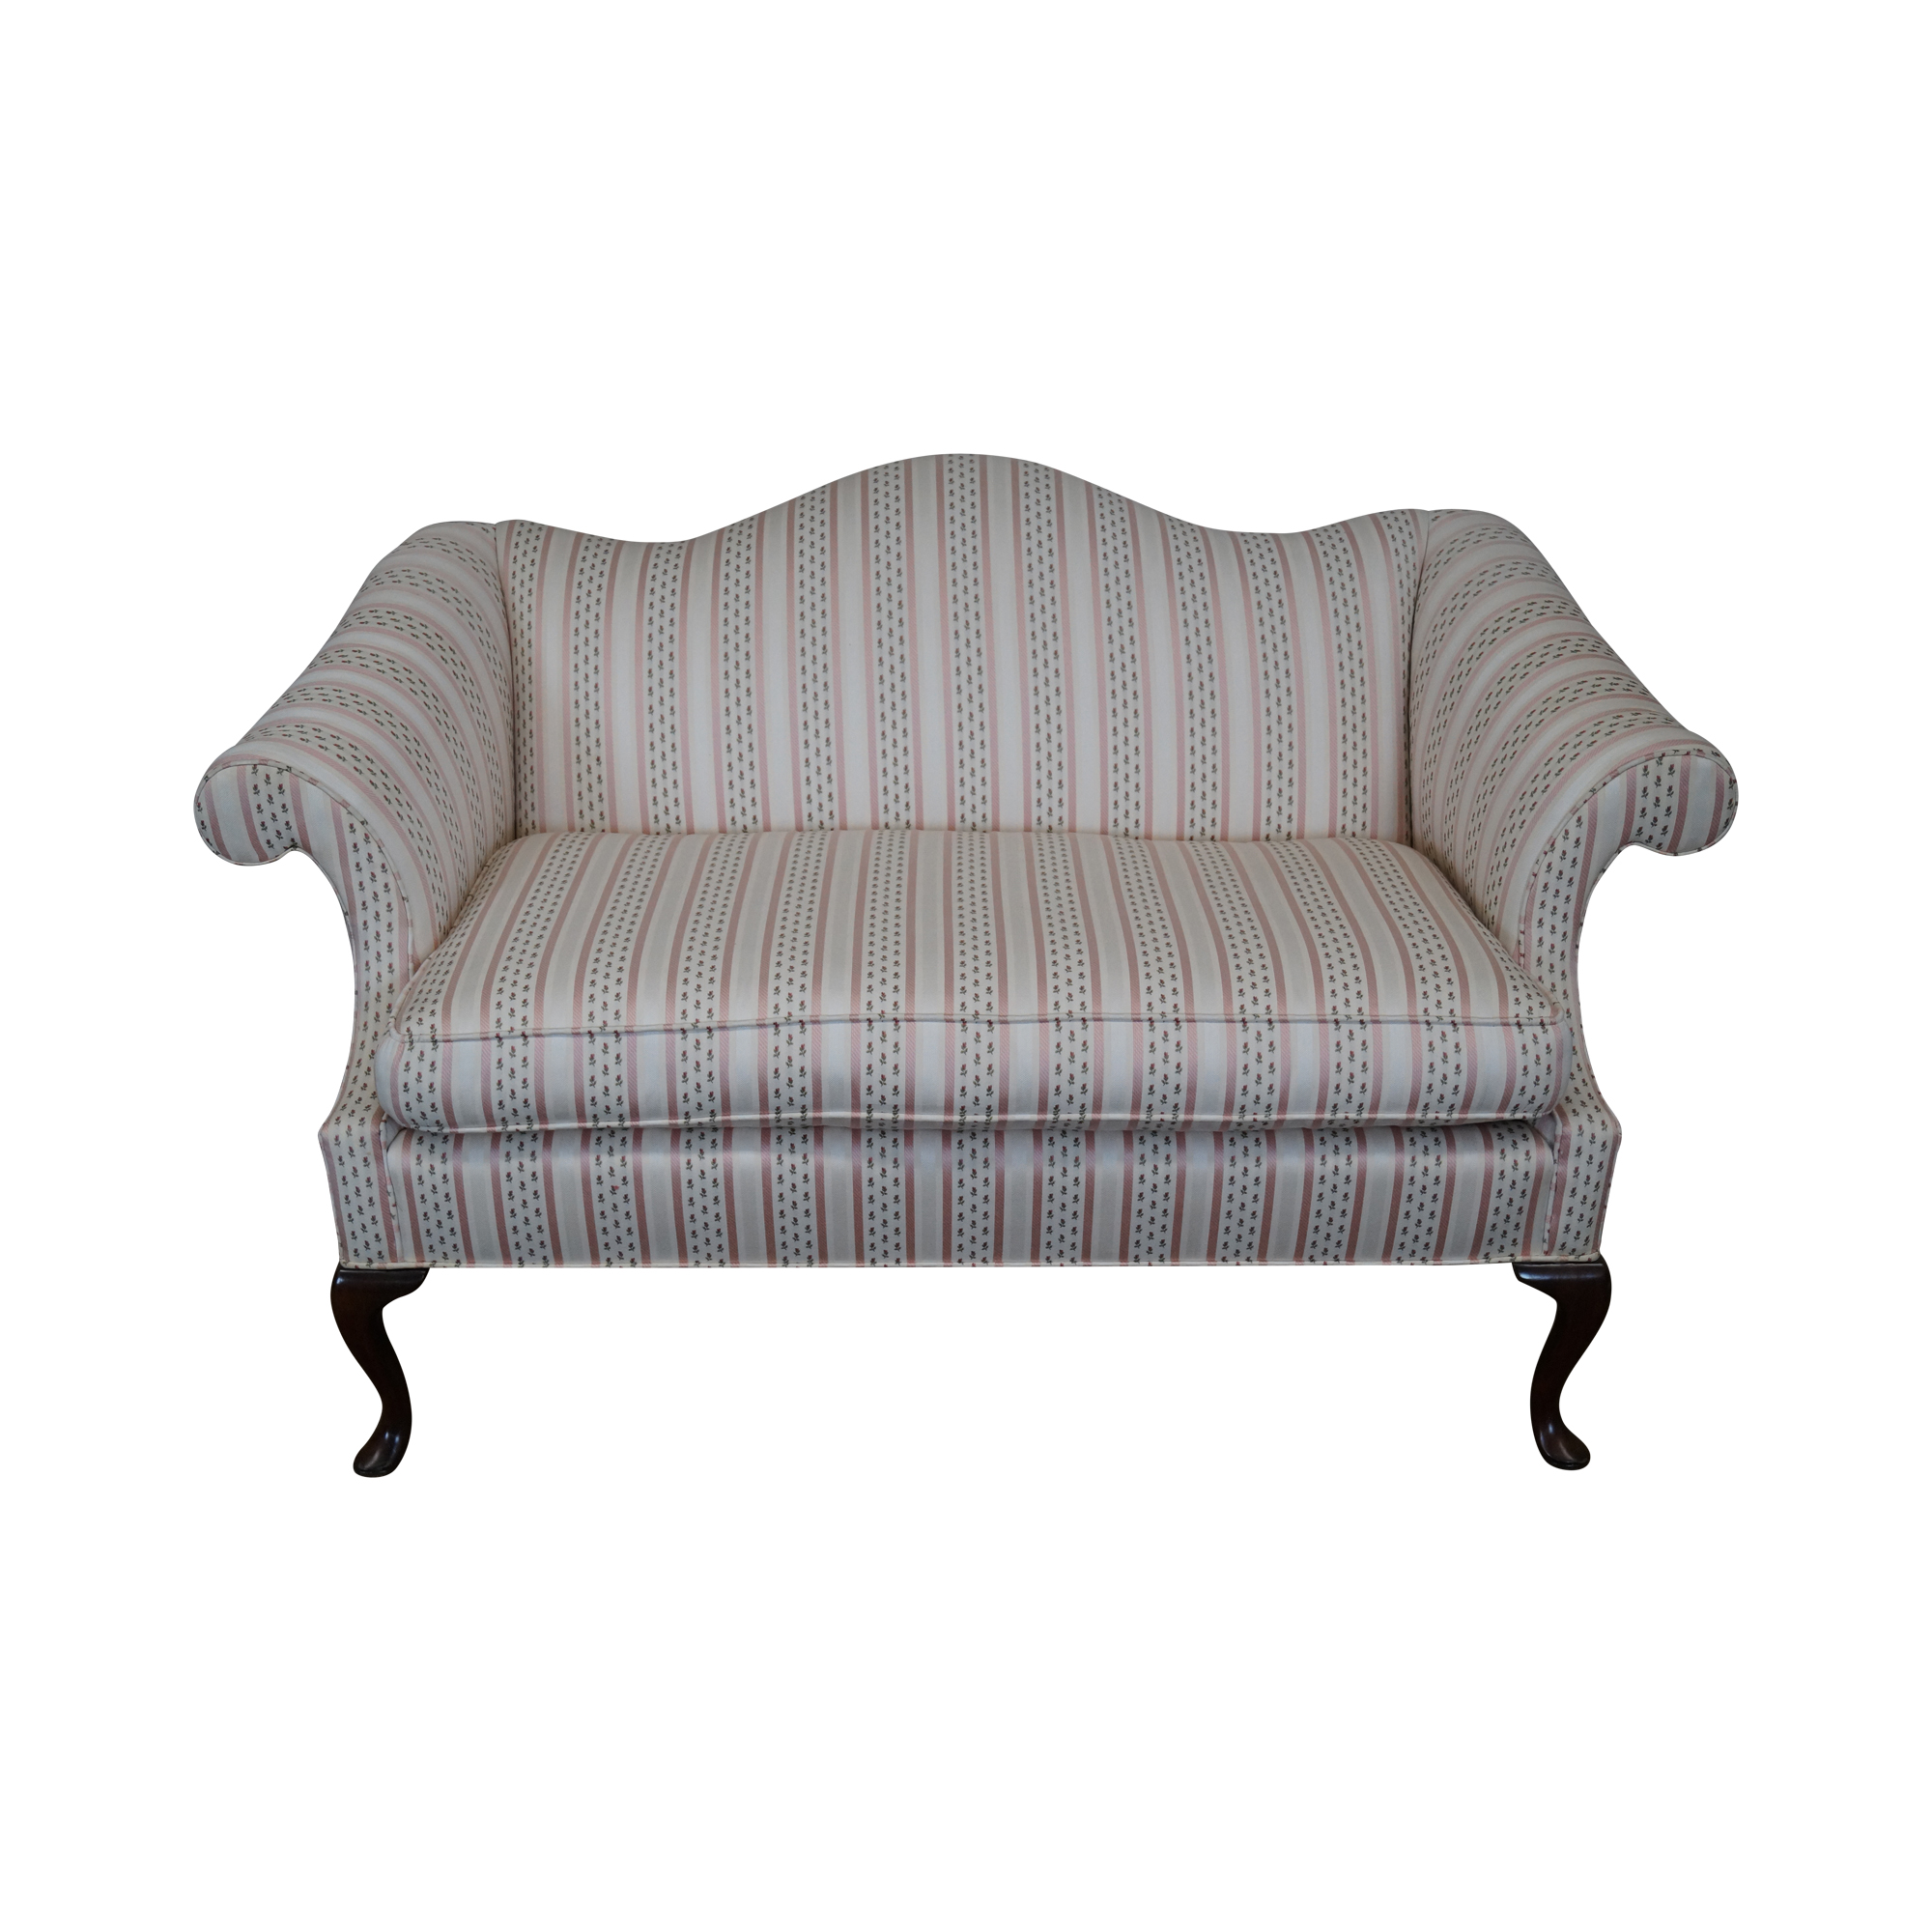 Harden Queen Anne 18th Century Style Loveseat B Chairish